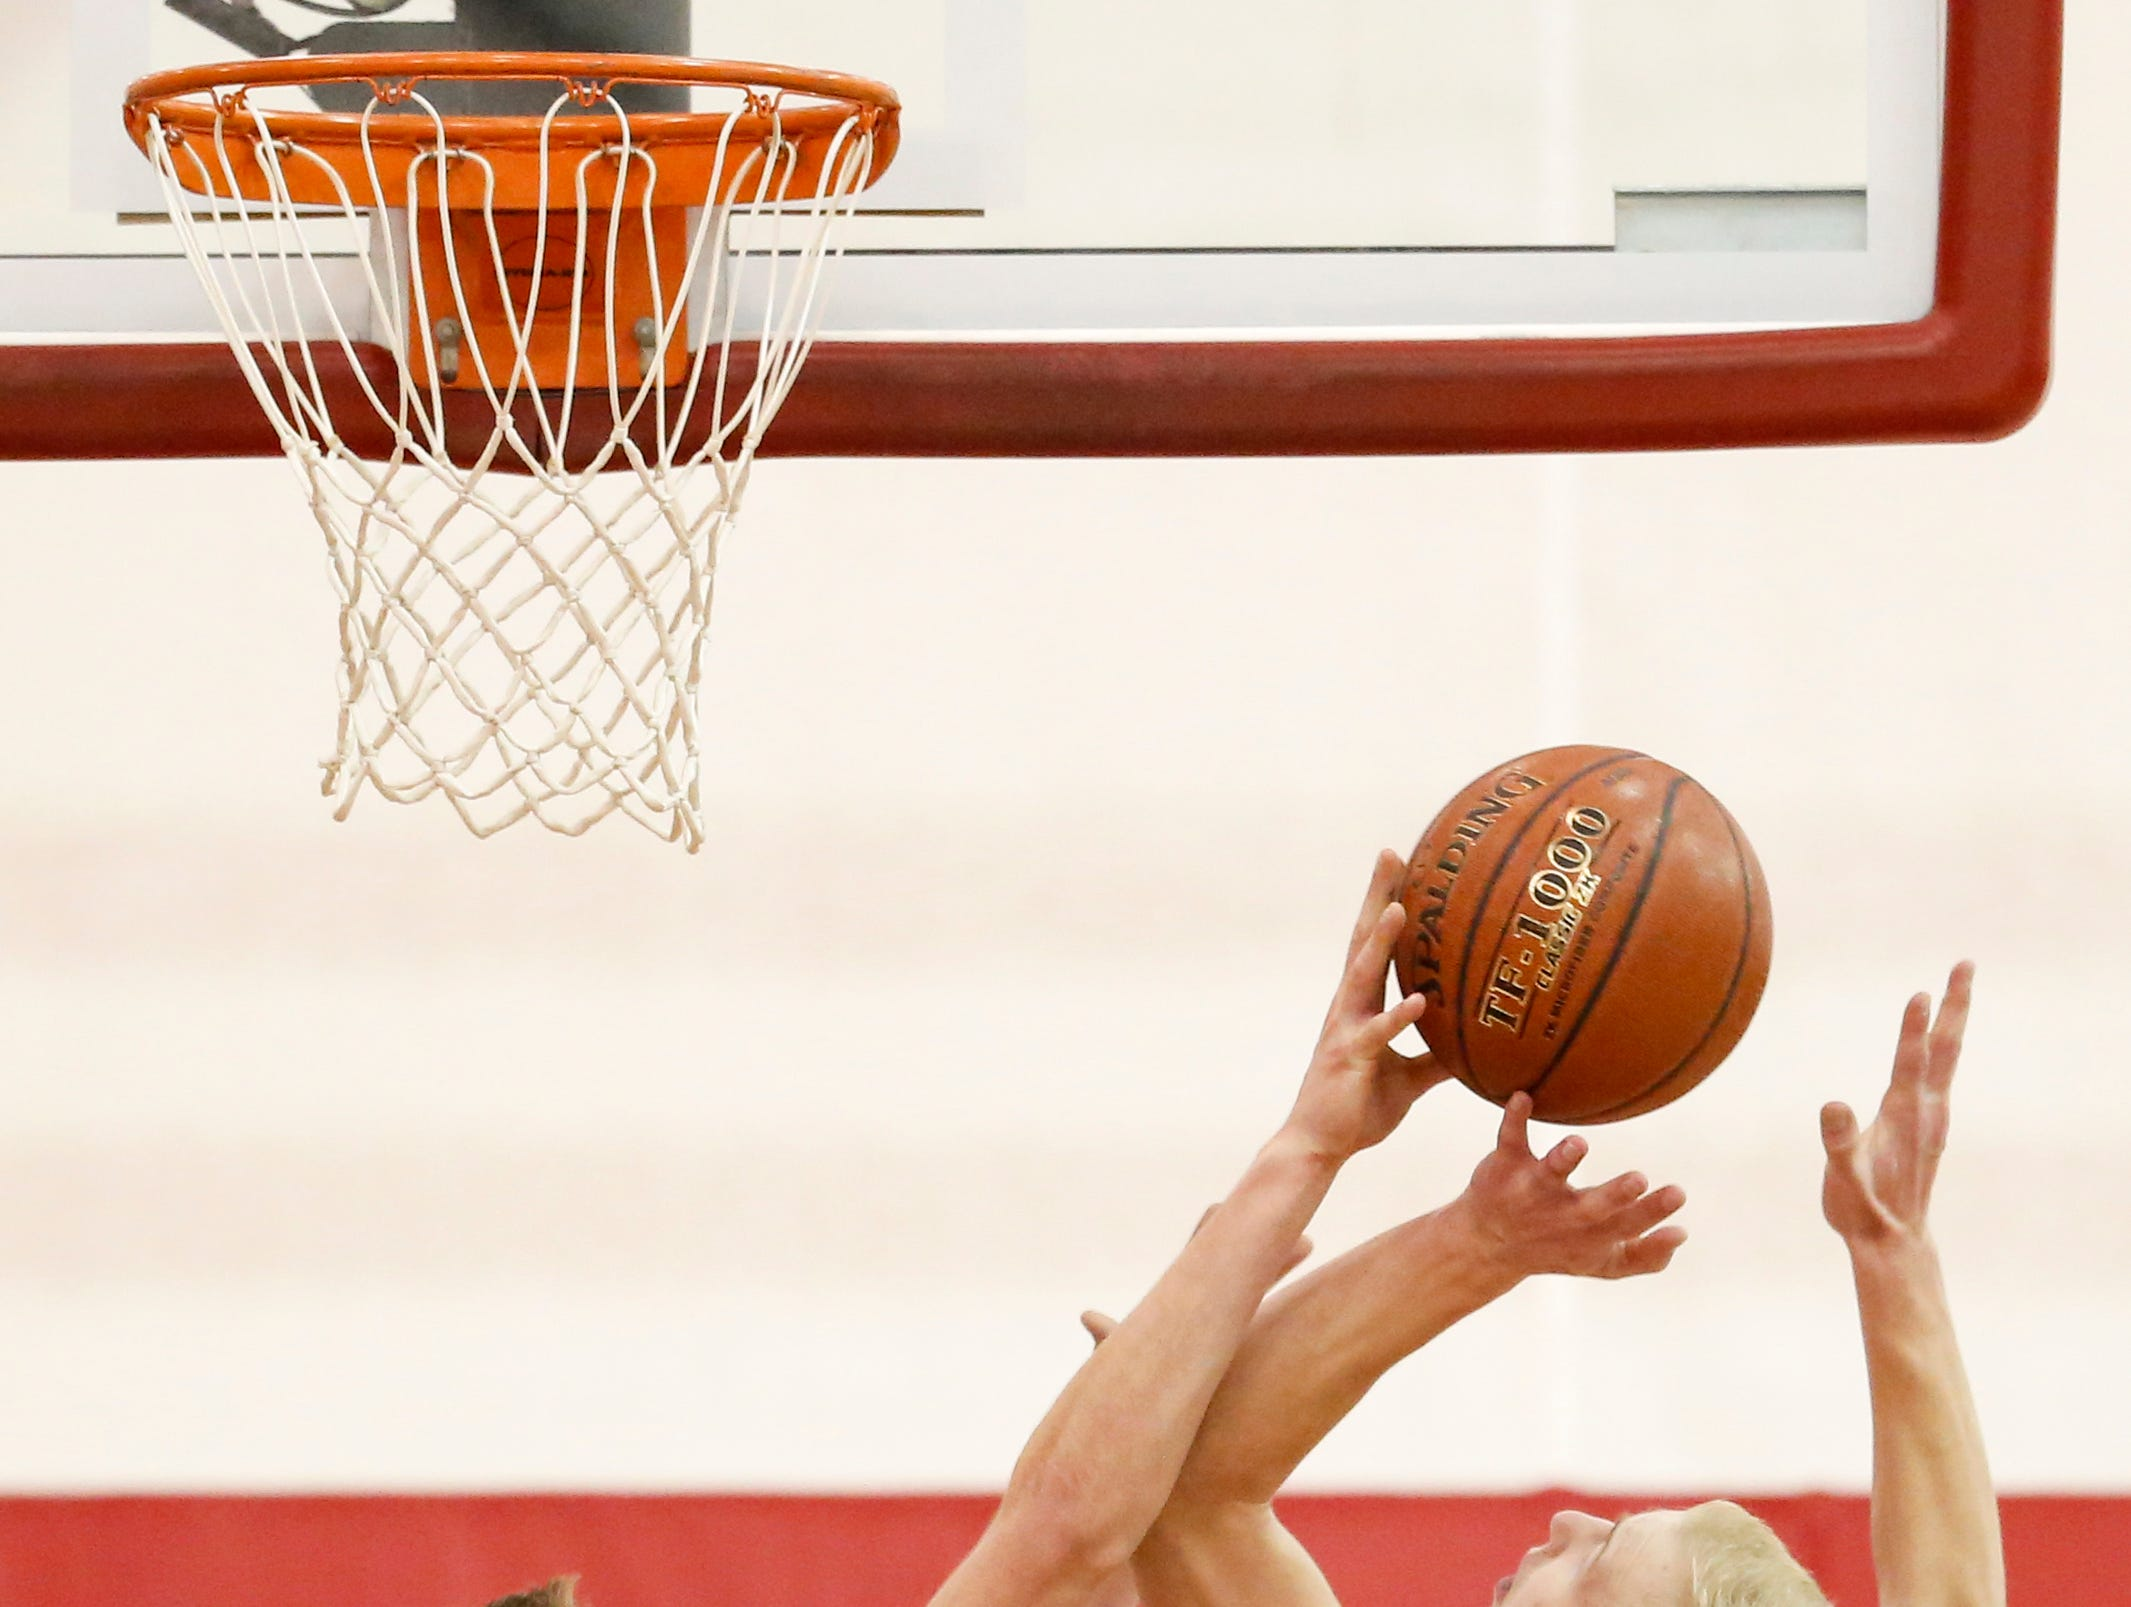 Valders' Trevor Leist (12) blocks a shot from Roncalli's Bryce Pautz (4) during an Eastern Wisconsin Conference game at Valders High School Thursday, January 3, 2019, in Valders, Wis. Joshua Clark/USA TODAY NETWORK-Wisconsin